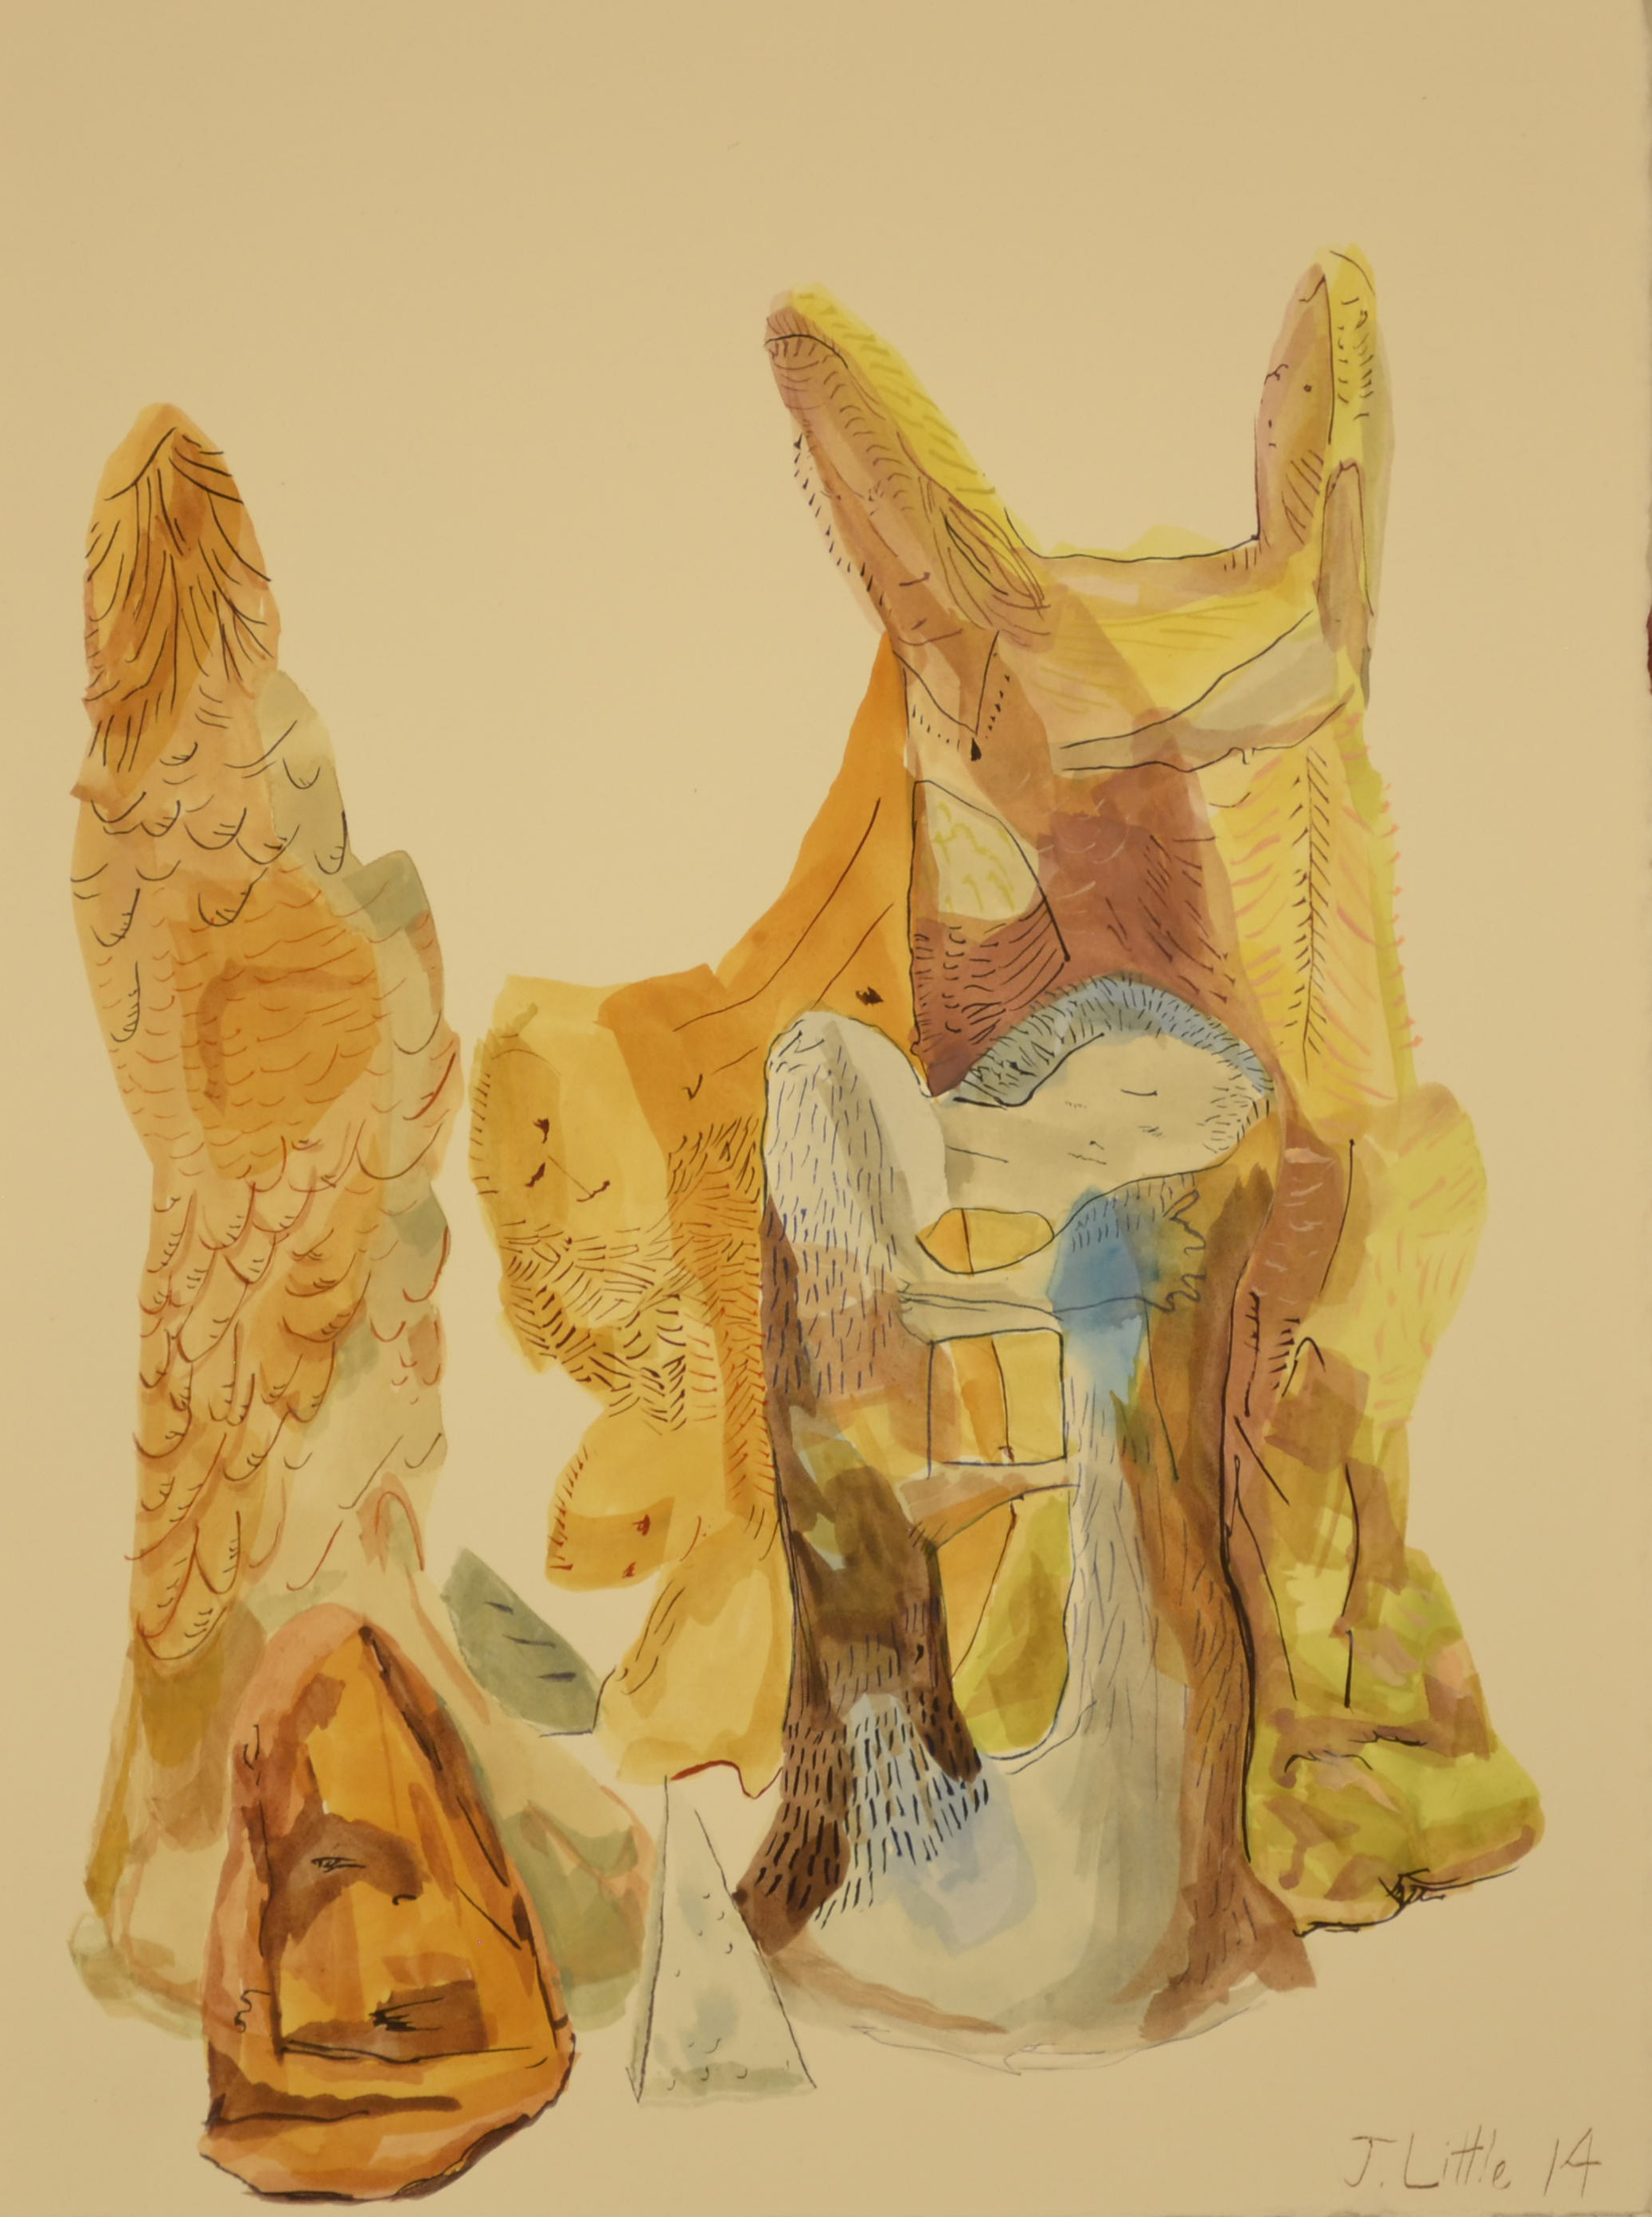 Orange Figure Cluster,11 x 15 inches, watercolor on paper,2014.